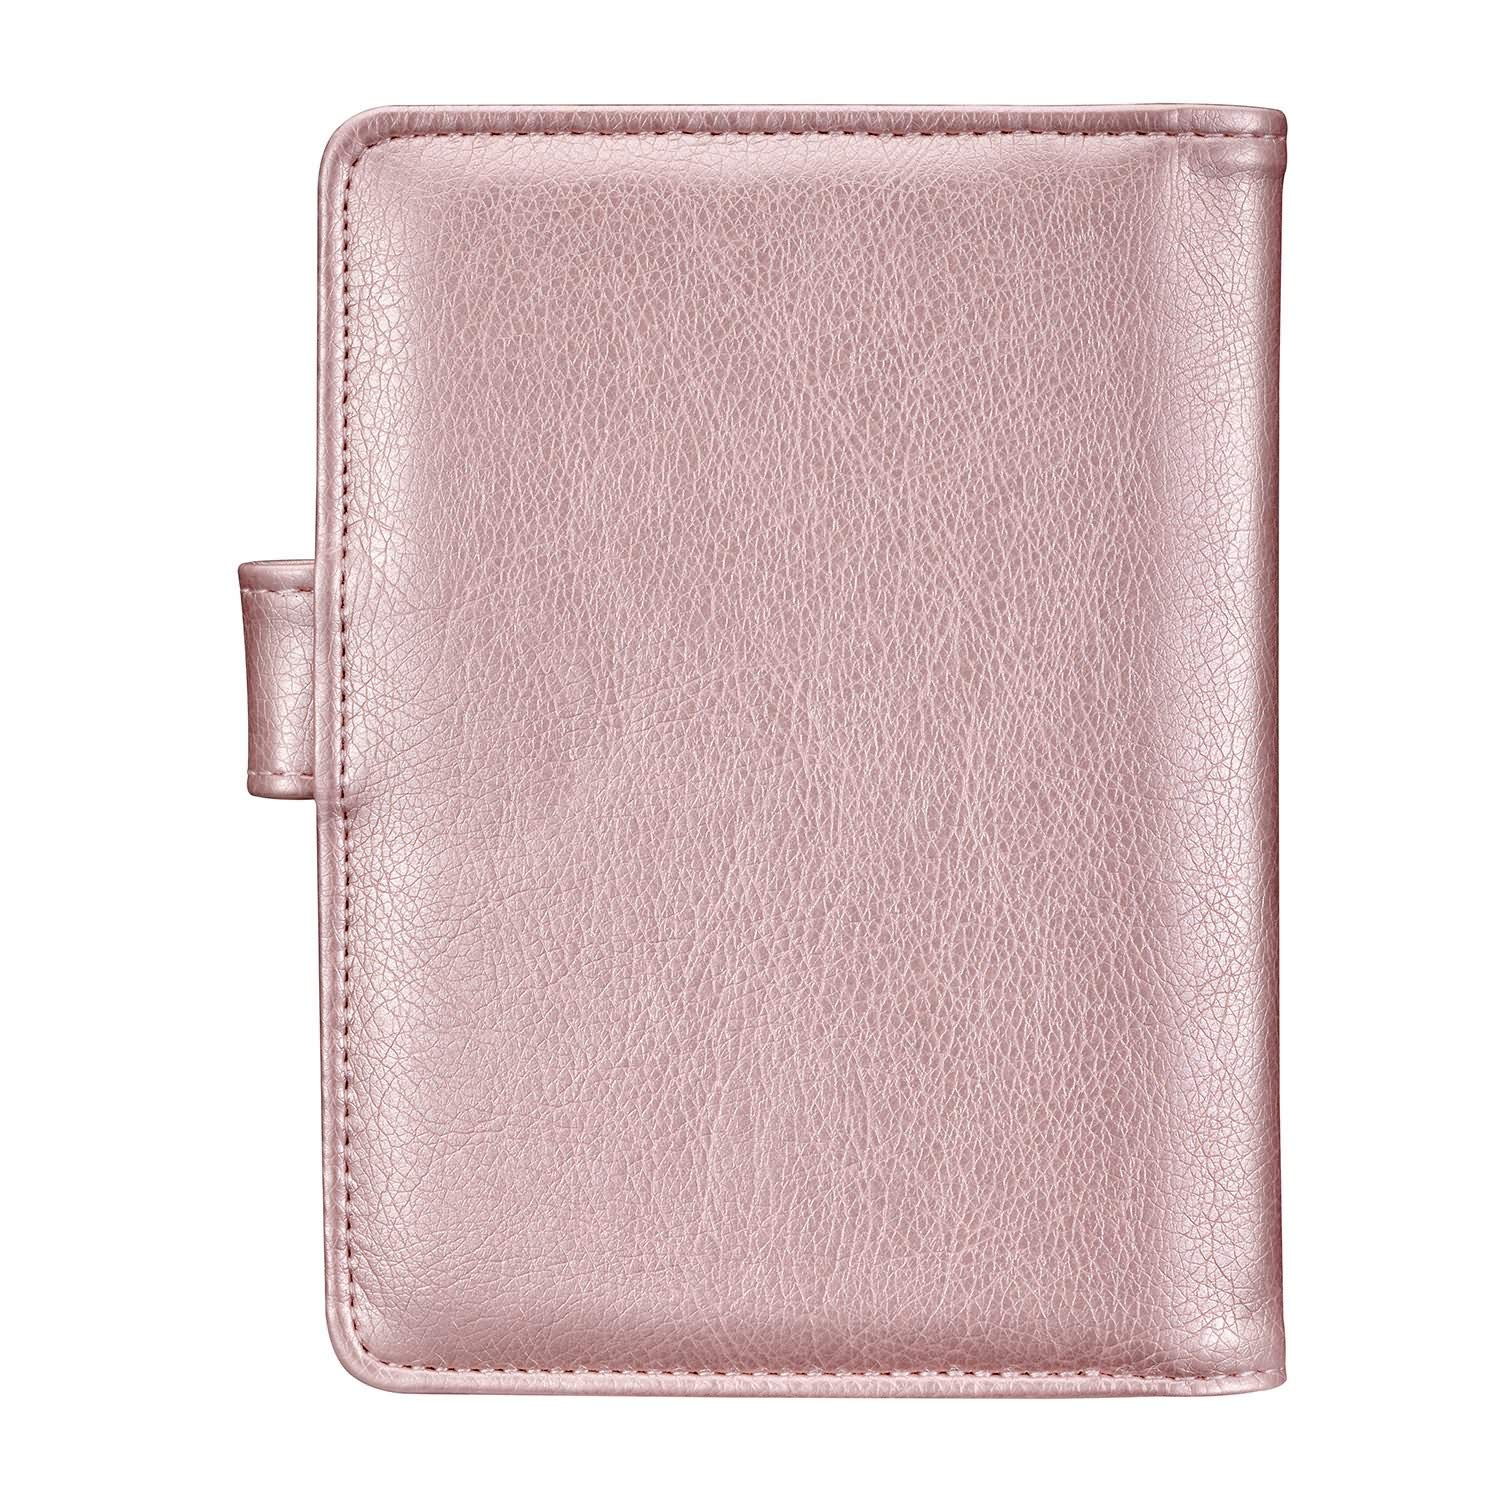 Passport Holder Travel Cover Case - HOTCOOL Leather RFID Blocking Wallet For Passport, Rose Gold (Magnetic) by HOTCOOL (Image #7)